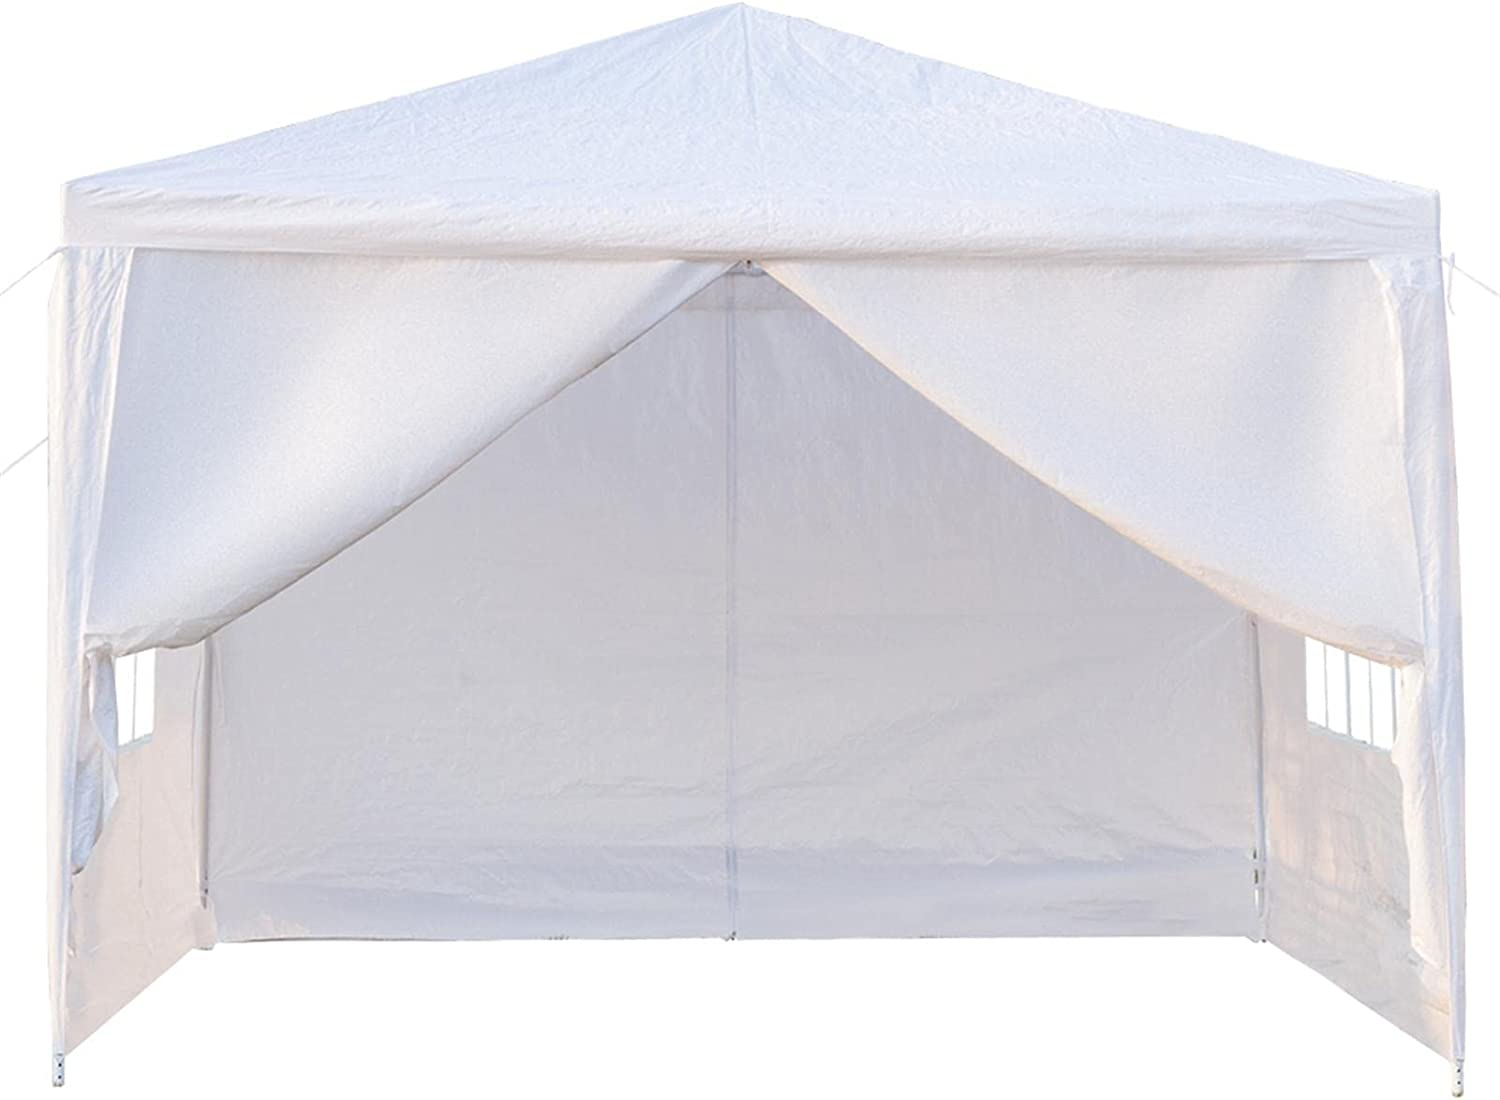 10x10ft Outdoor Canopy Tent Ranking TOP19 Wedding online shopping Ca Party Waterproof BBQ